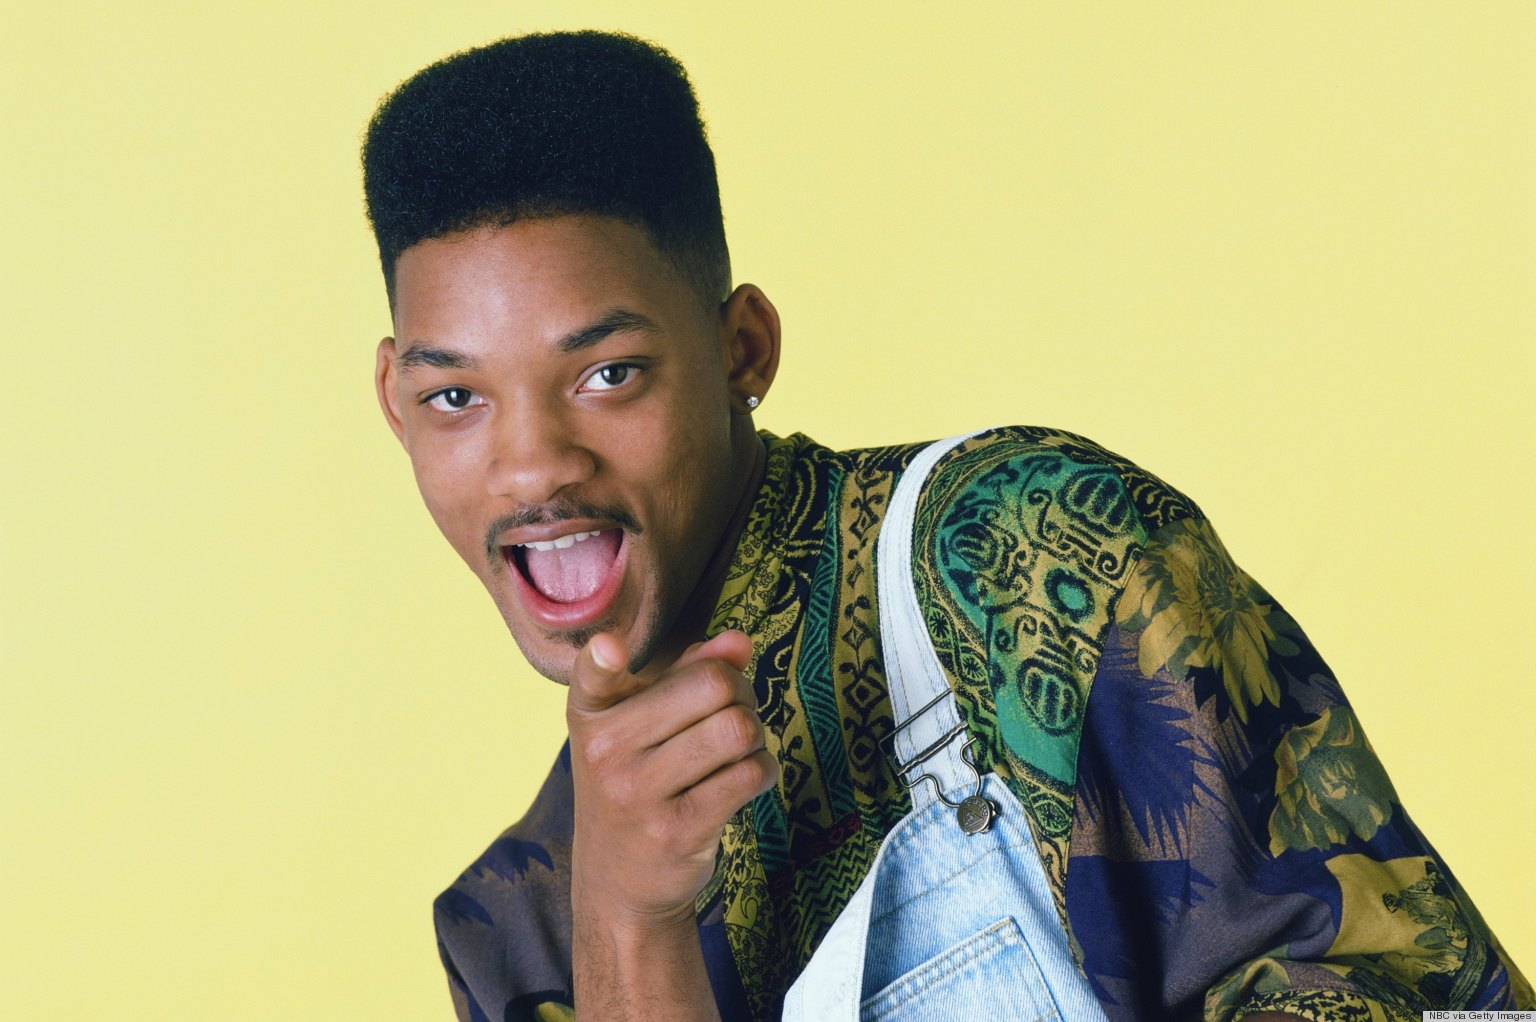 Will Smith with the high-top fade cut